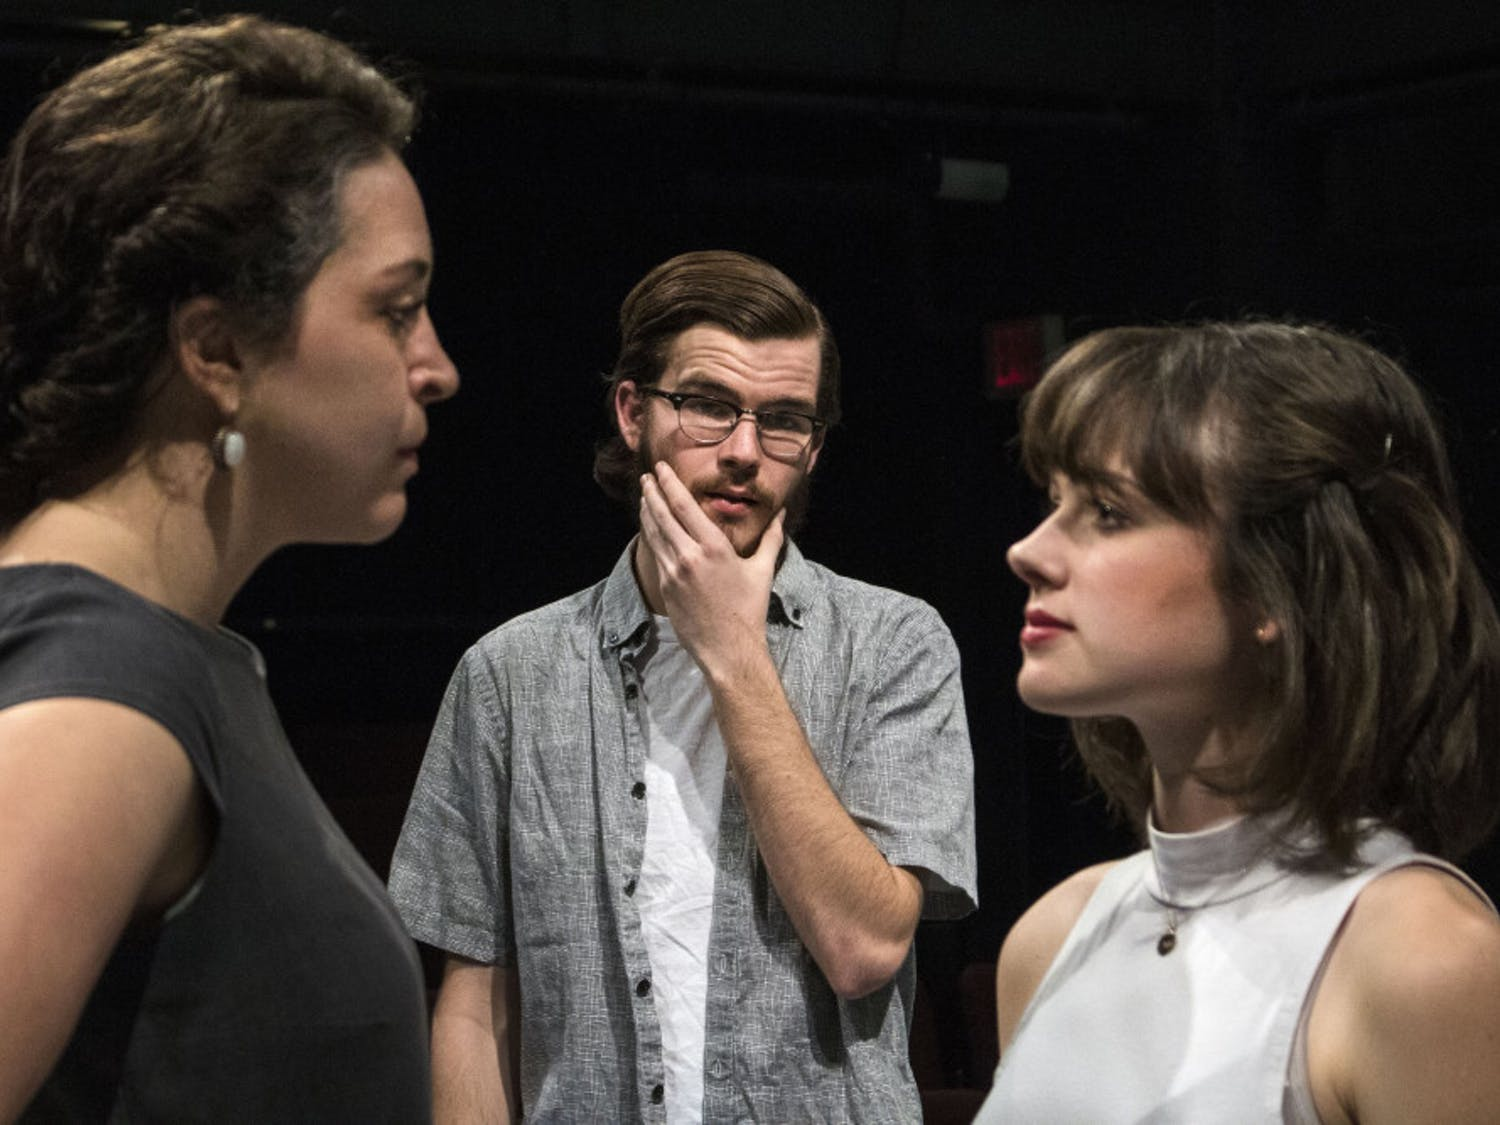 """Elise Selah, Storm Tracy and Lauren Crandall act out a scene from """"White Guy on the Bus,"""" a play by Bruce Graham being put on by the UF School of Theatre and Dance. Showings for the play will begin March 21 in the McGuire Pavilion Black Box Theatre."""